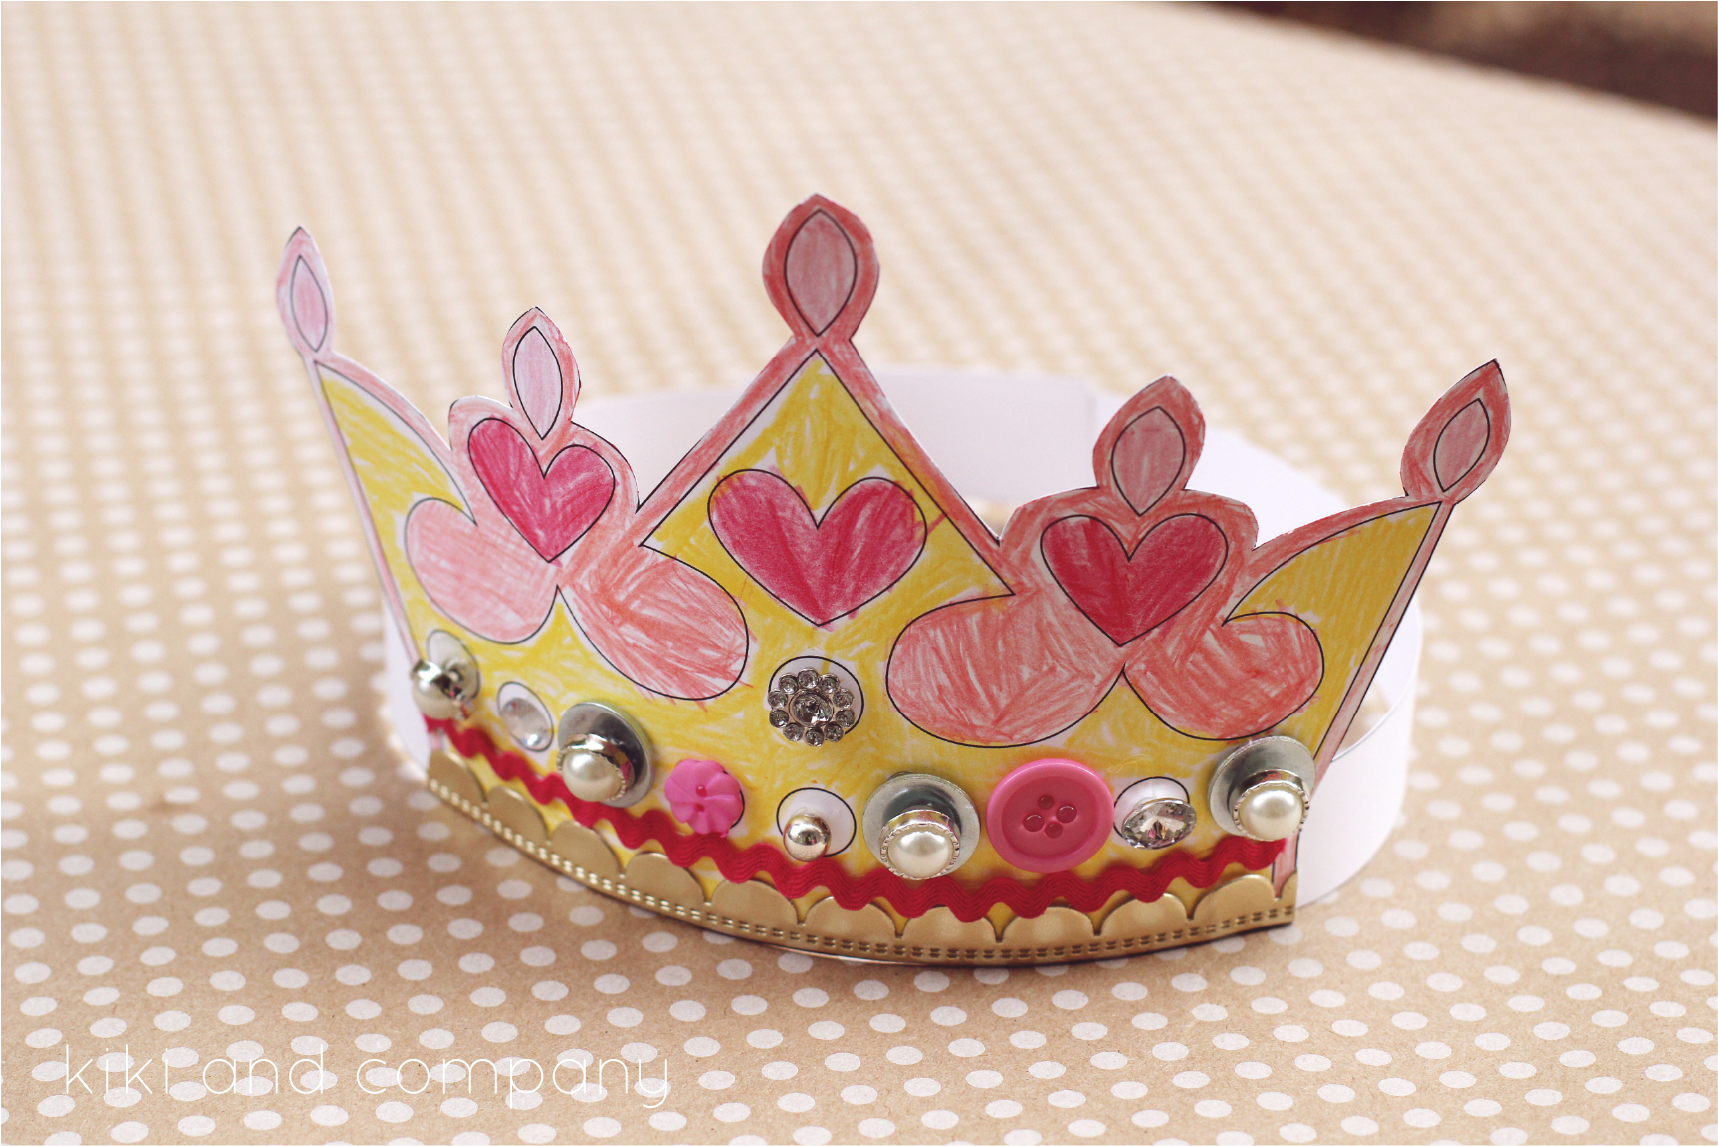 Printable Kings and Queens crown {Free Printable} - The Crafting ...